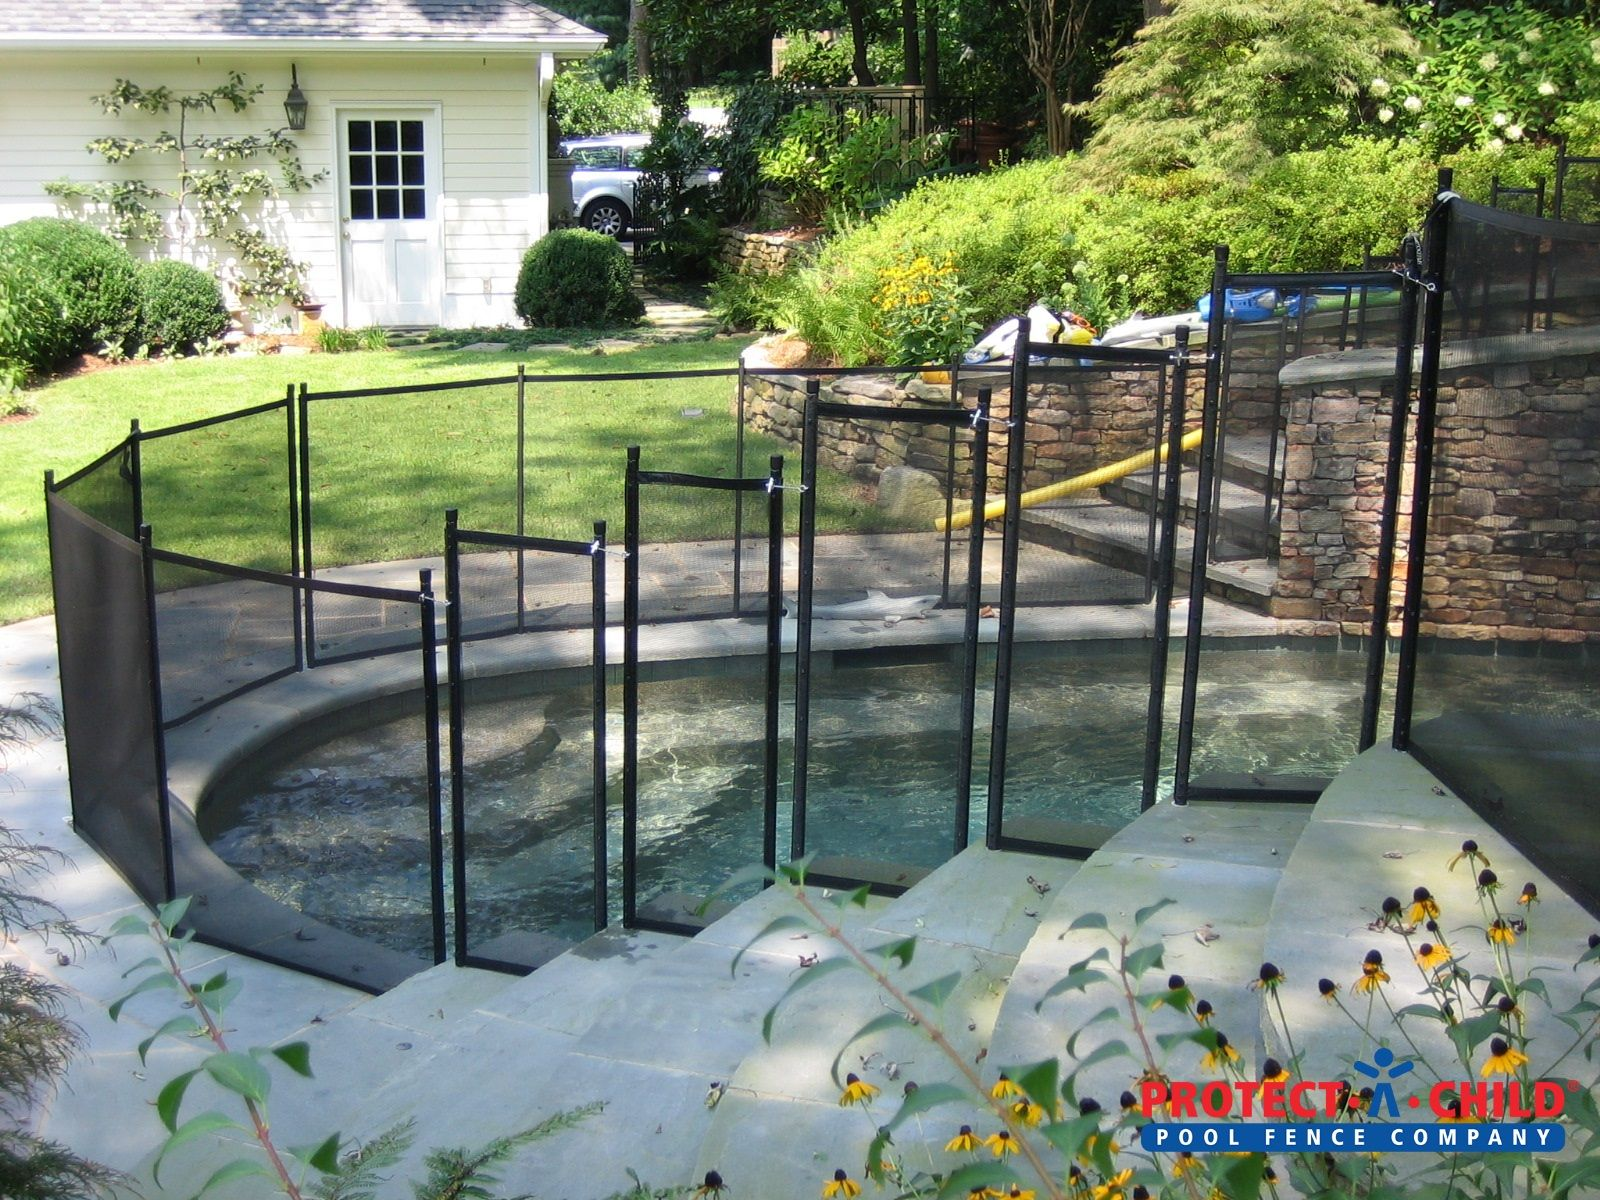 Pool Fence Installation Experts Protect A Child Pool Fence Fence Pool